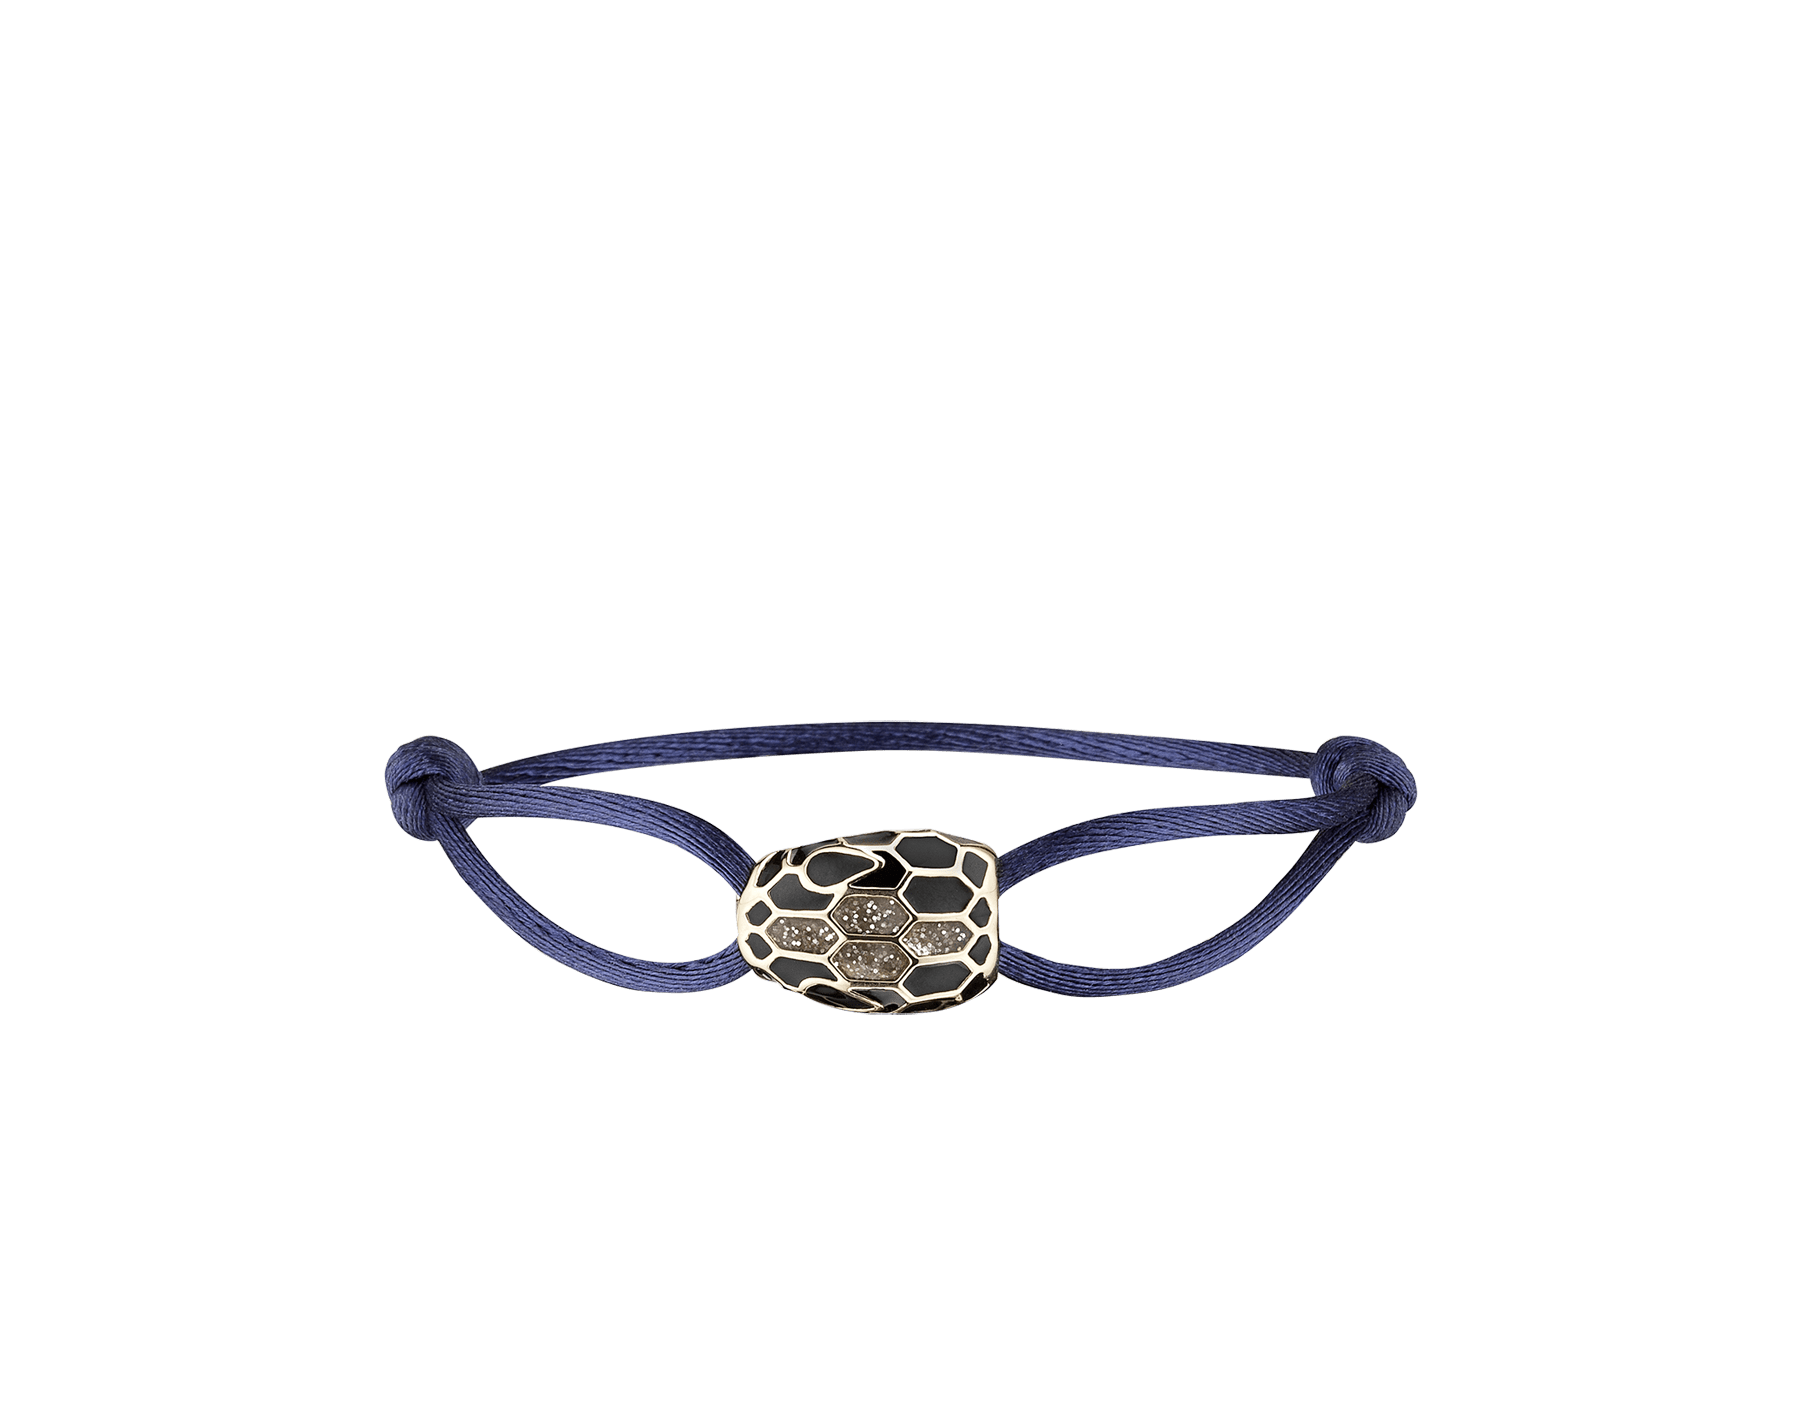 """""""Serpenti Forever"""" bracelet in Mimetic Jade green fabric with a dark ruthenium-plated brass tempting snakehead décor enamelled in black, with seductive black enamel eyes. SERP-STRINGb image 2"""